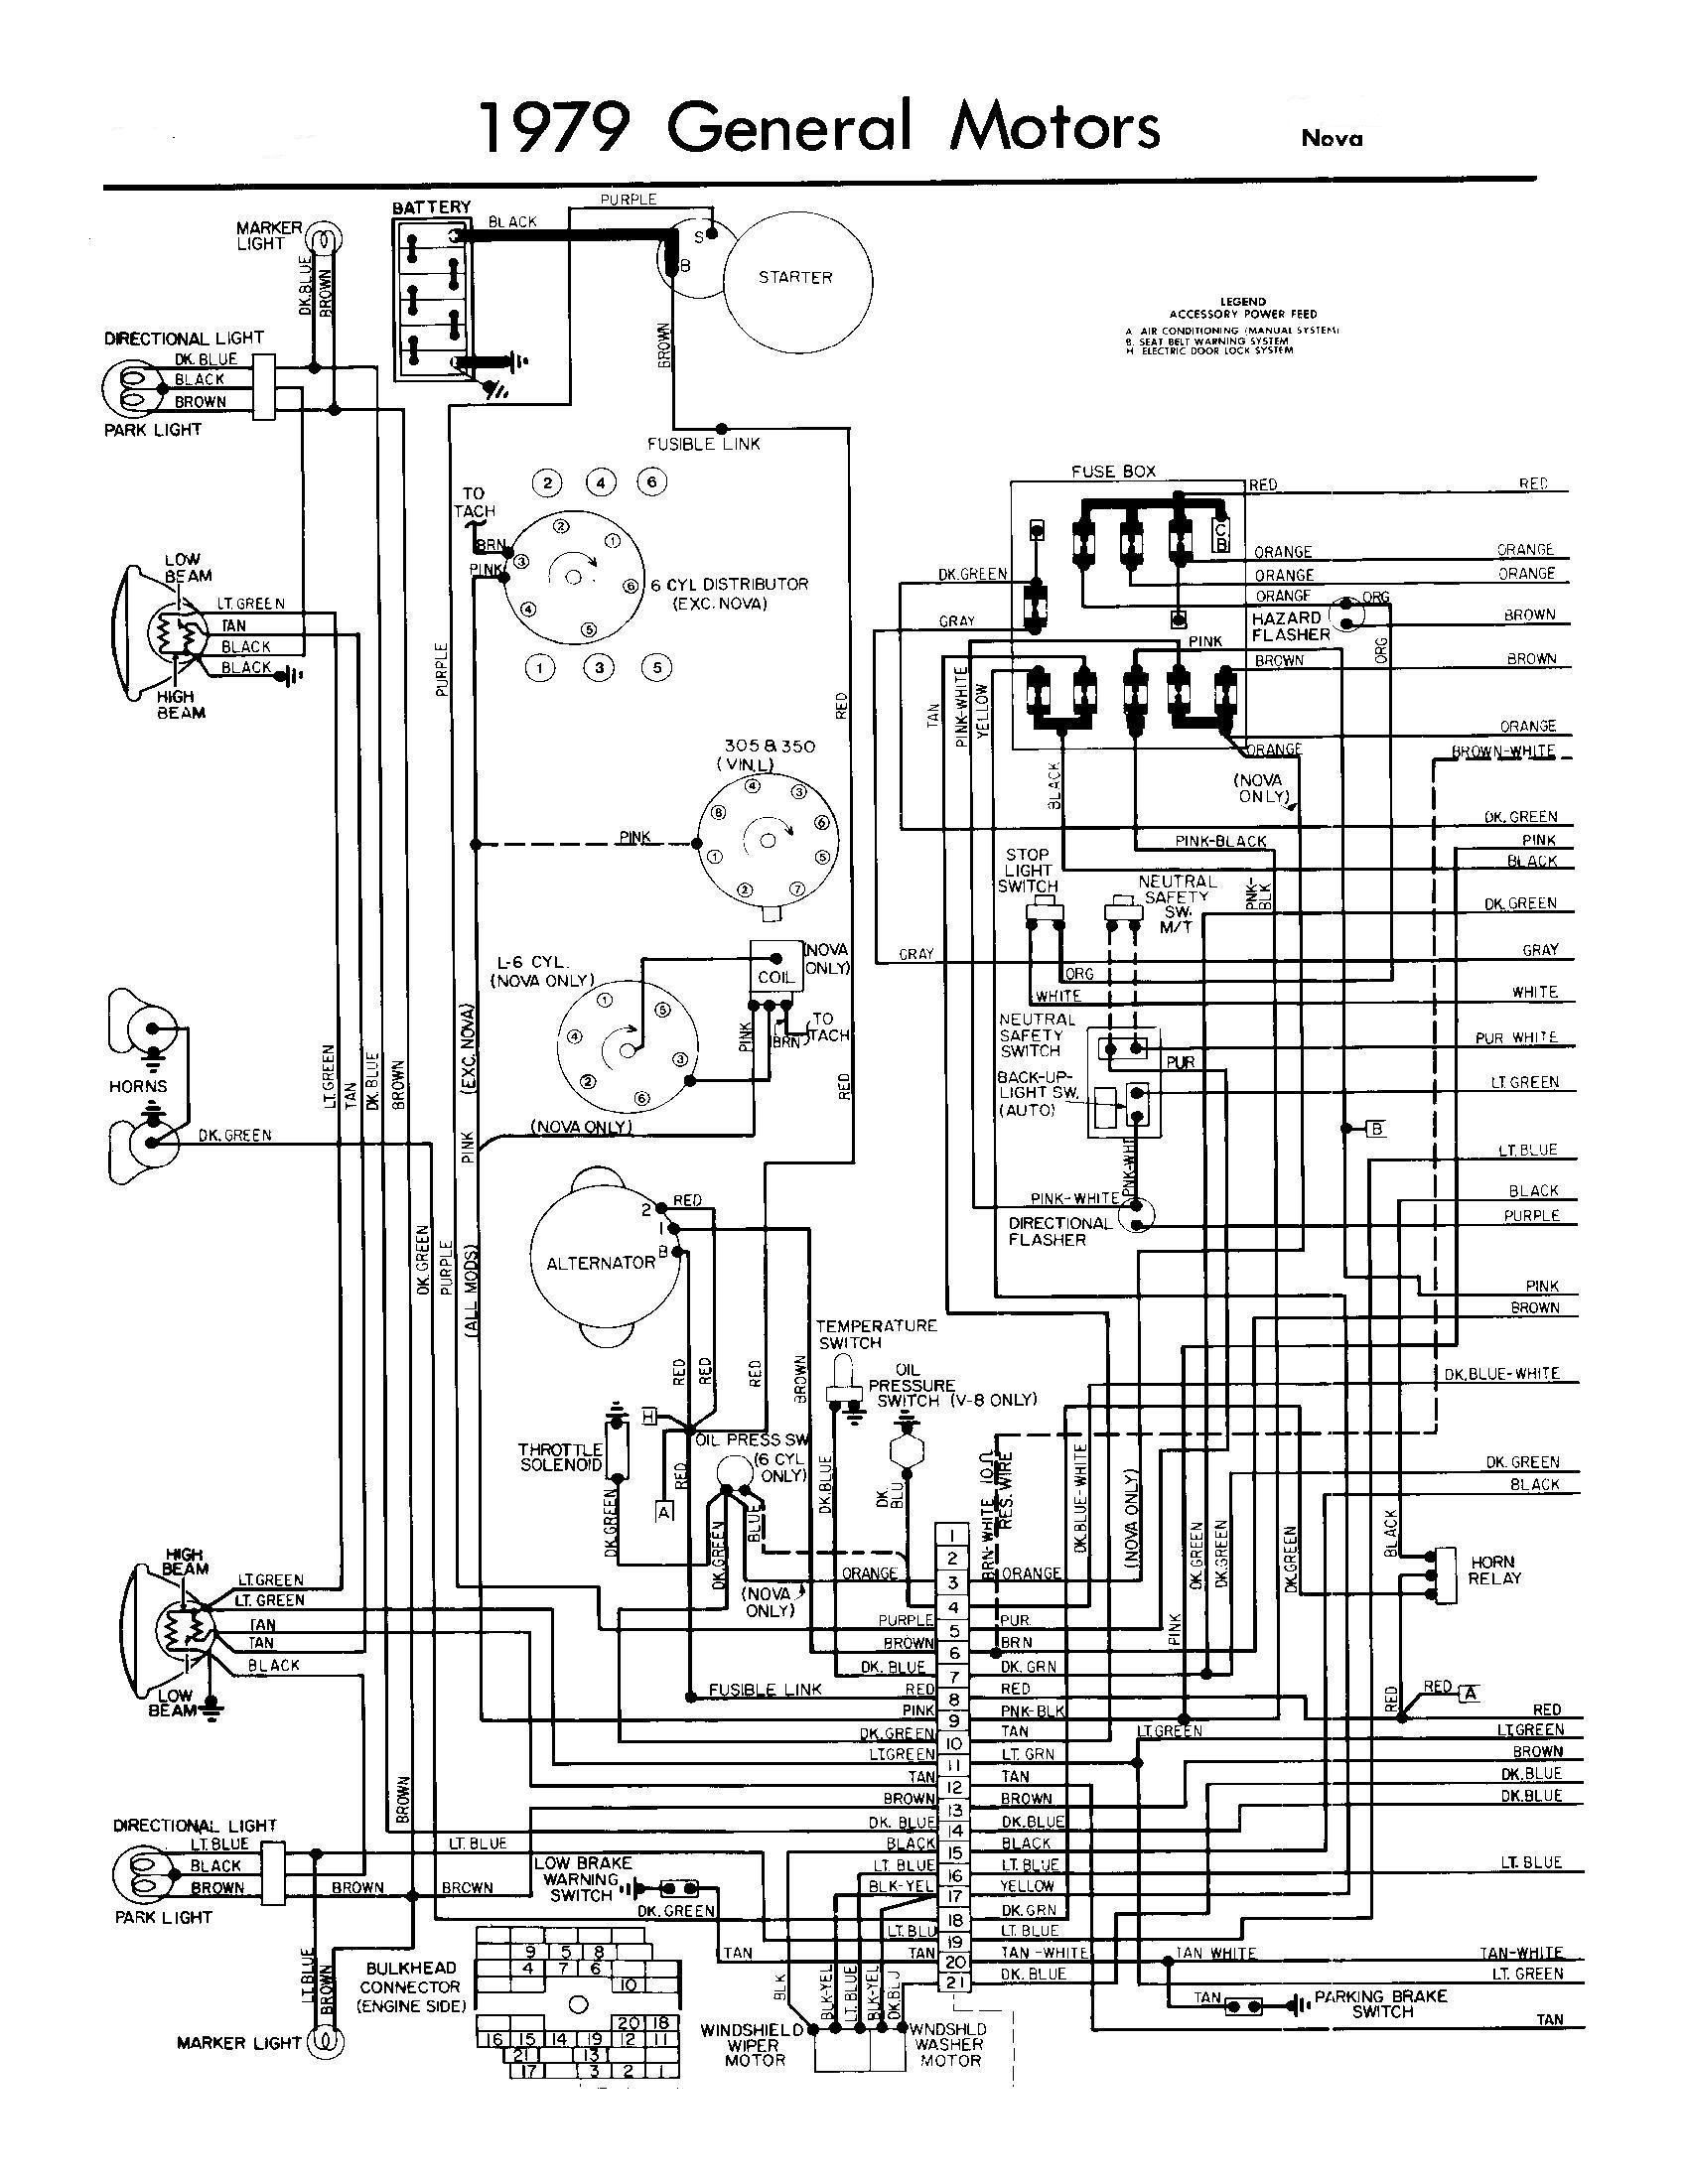 1995 ford f 450 air conditioning blower dashboard wiring diagram